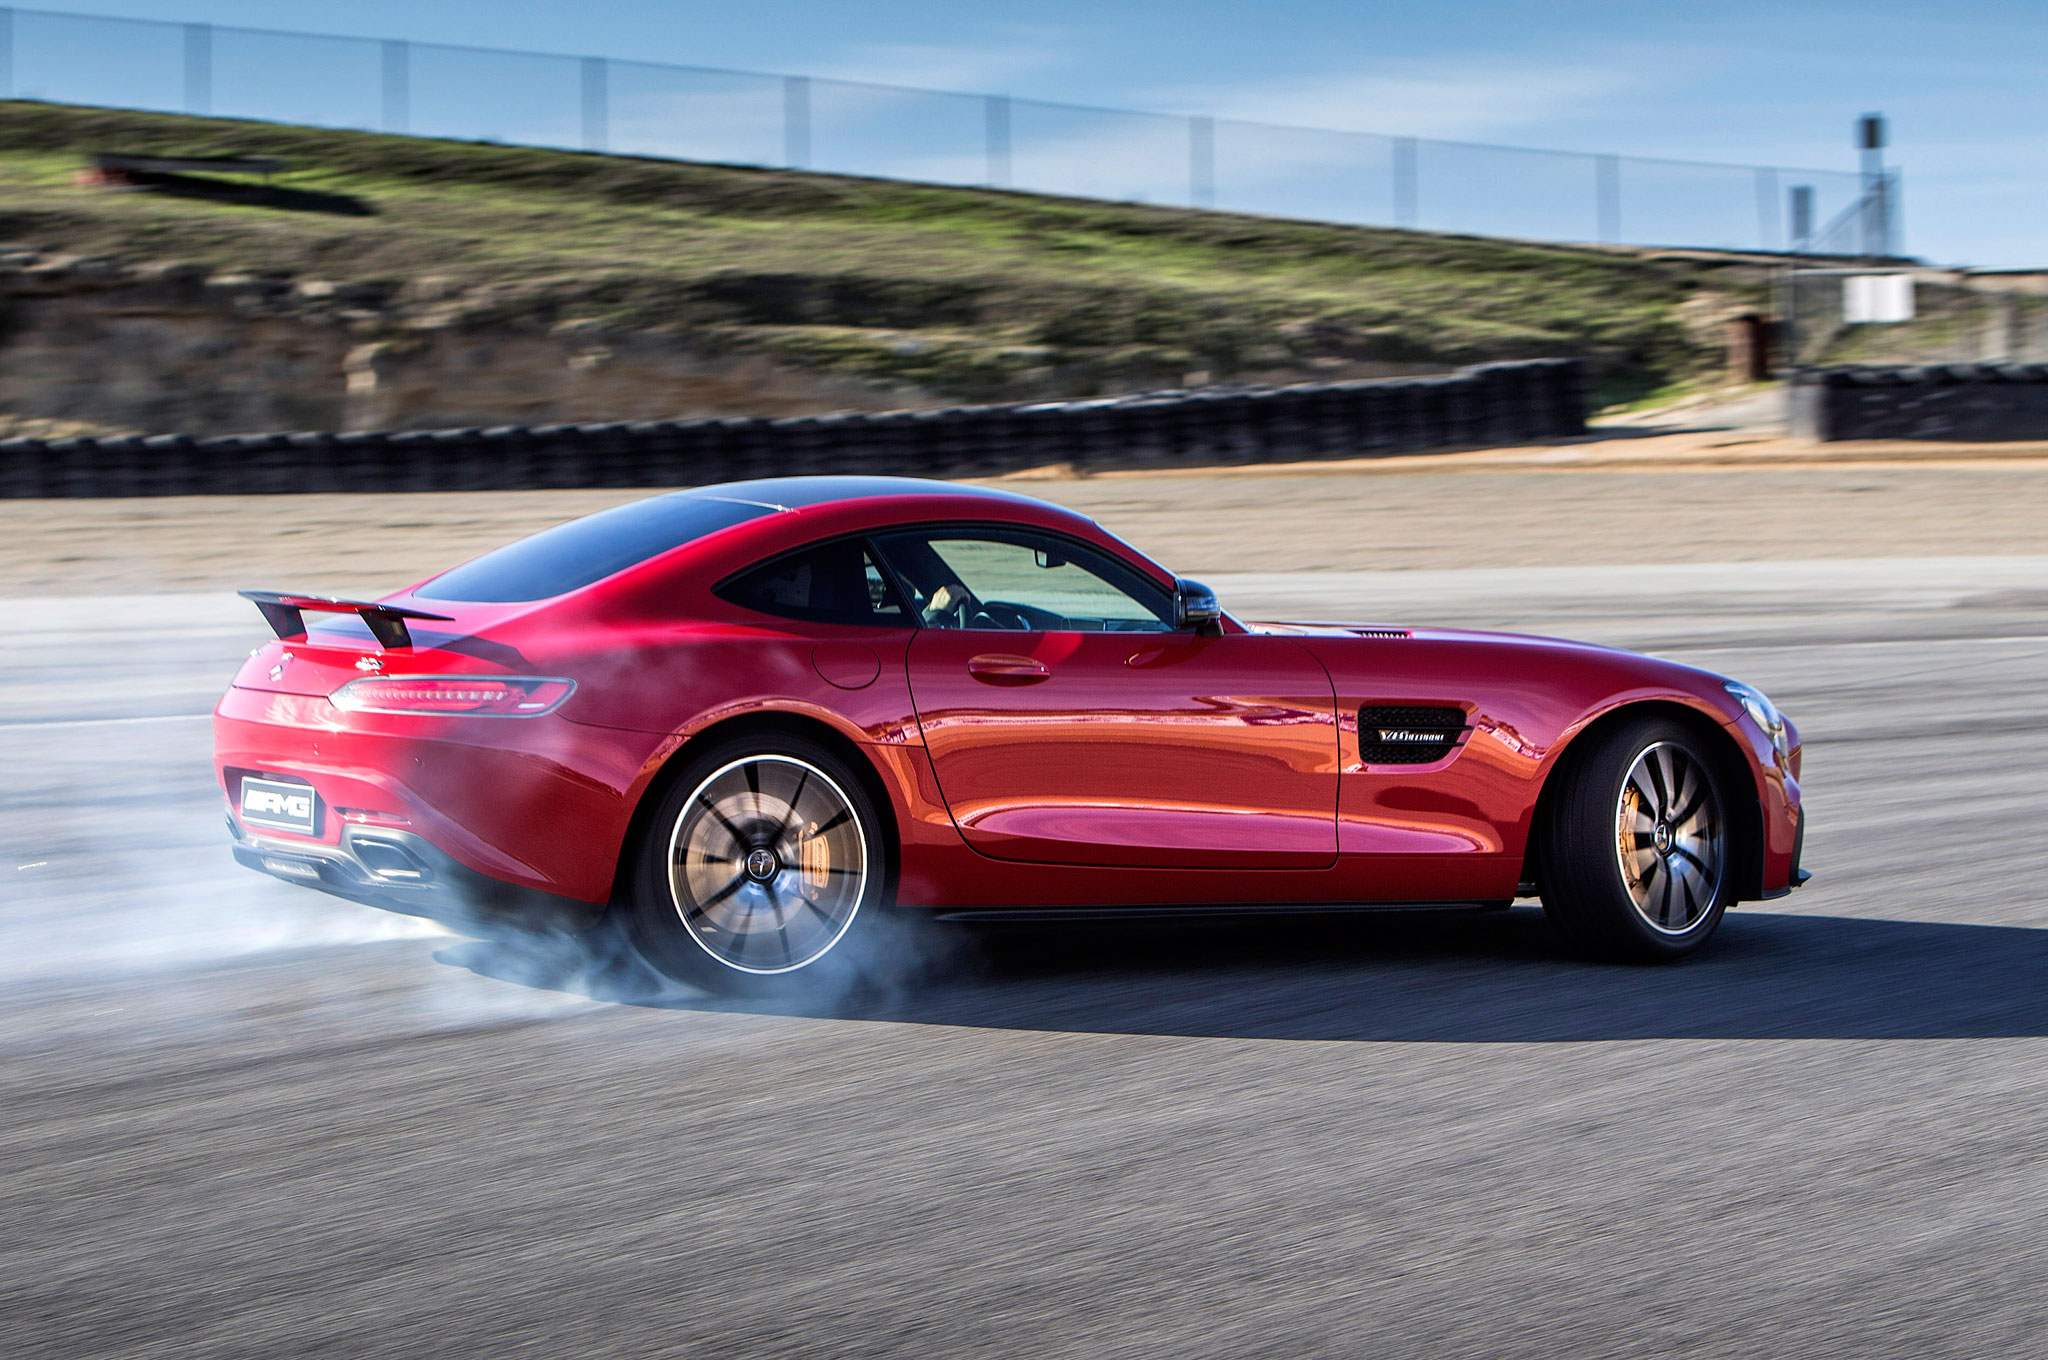 http://st.automobilemag.com/uploads/sites/11/2014/11/2016-Mercedes-AMG-GT-S-Edition-1-rear-passenger-profile-tire-burnout.jpg